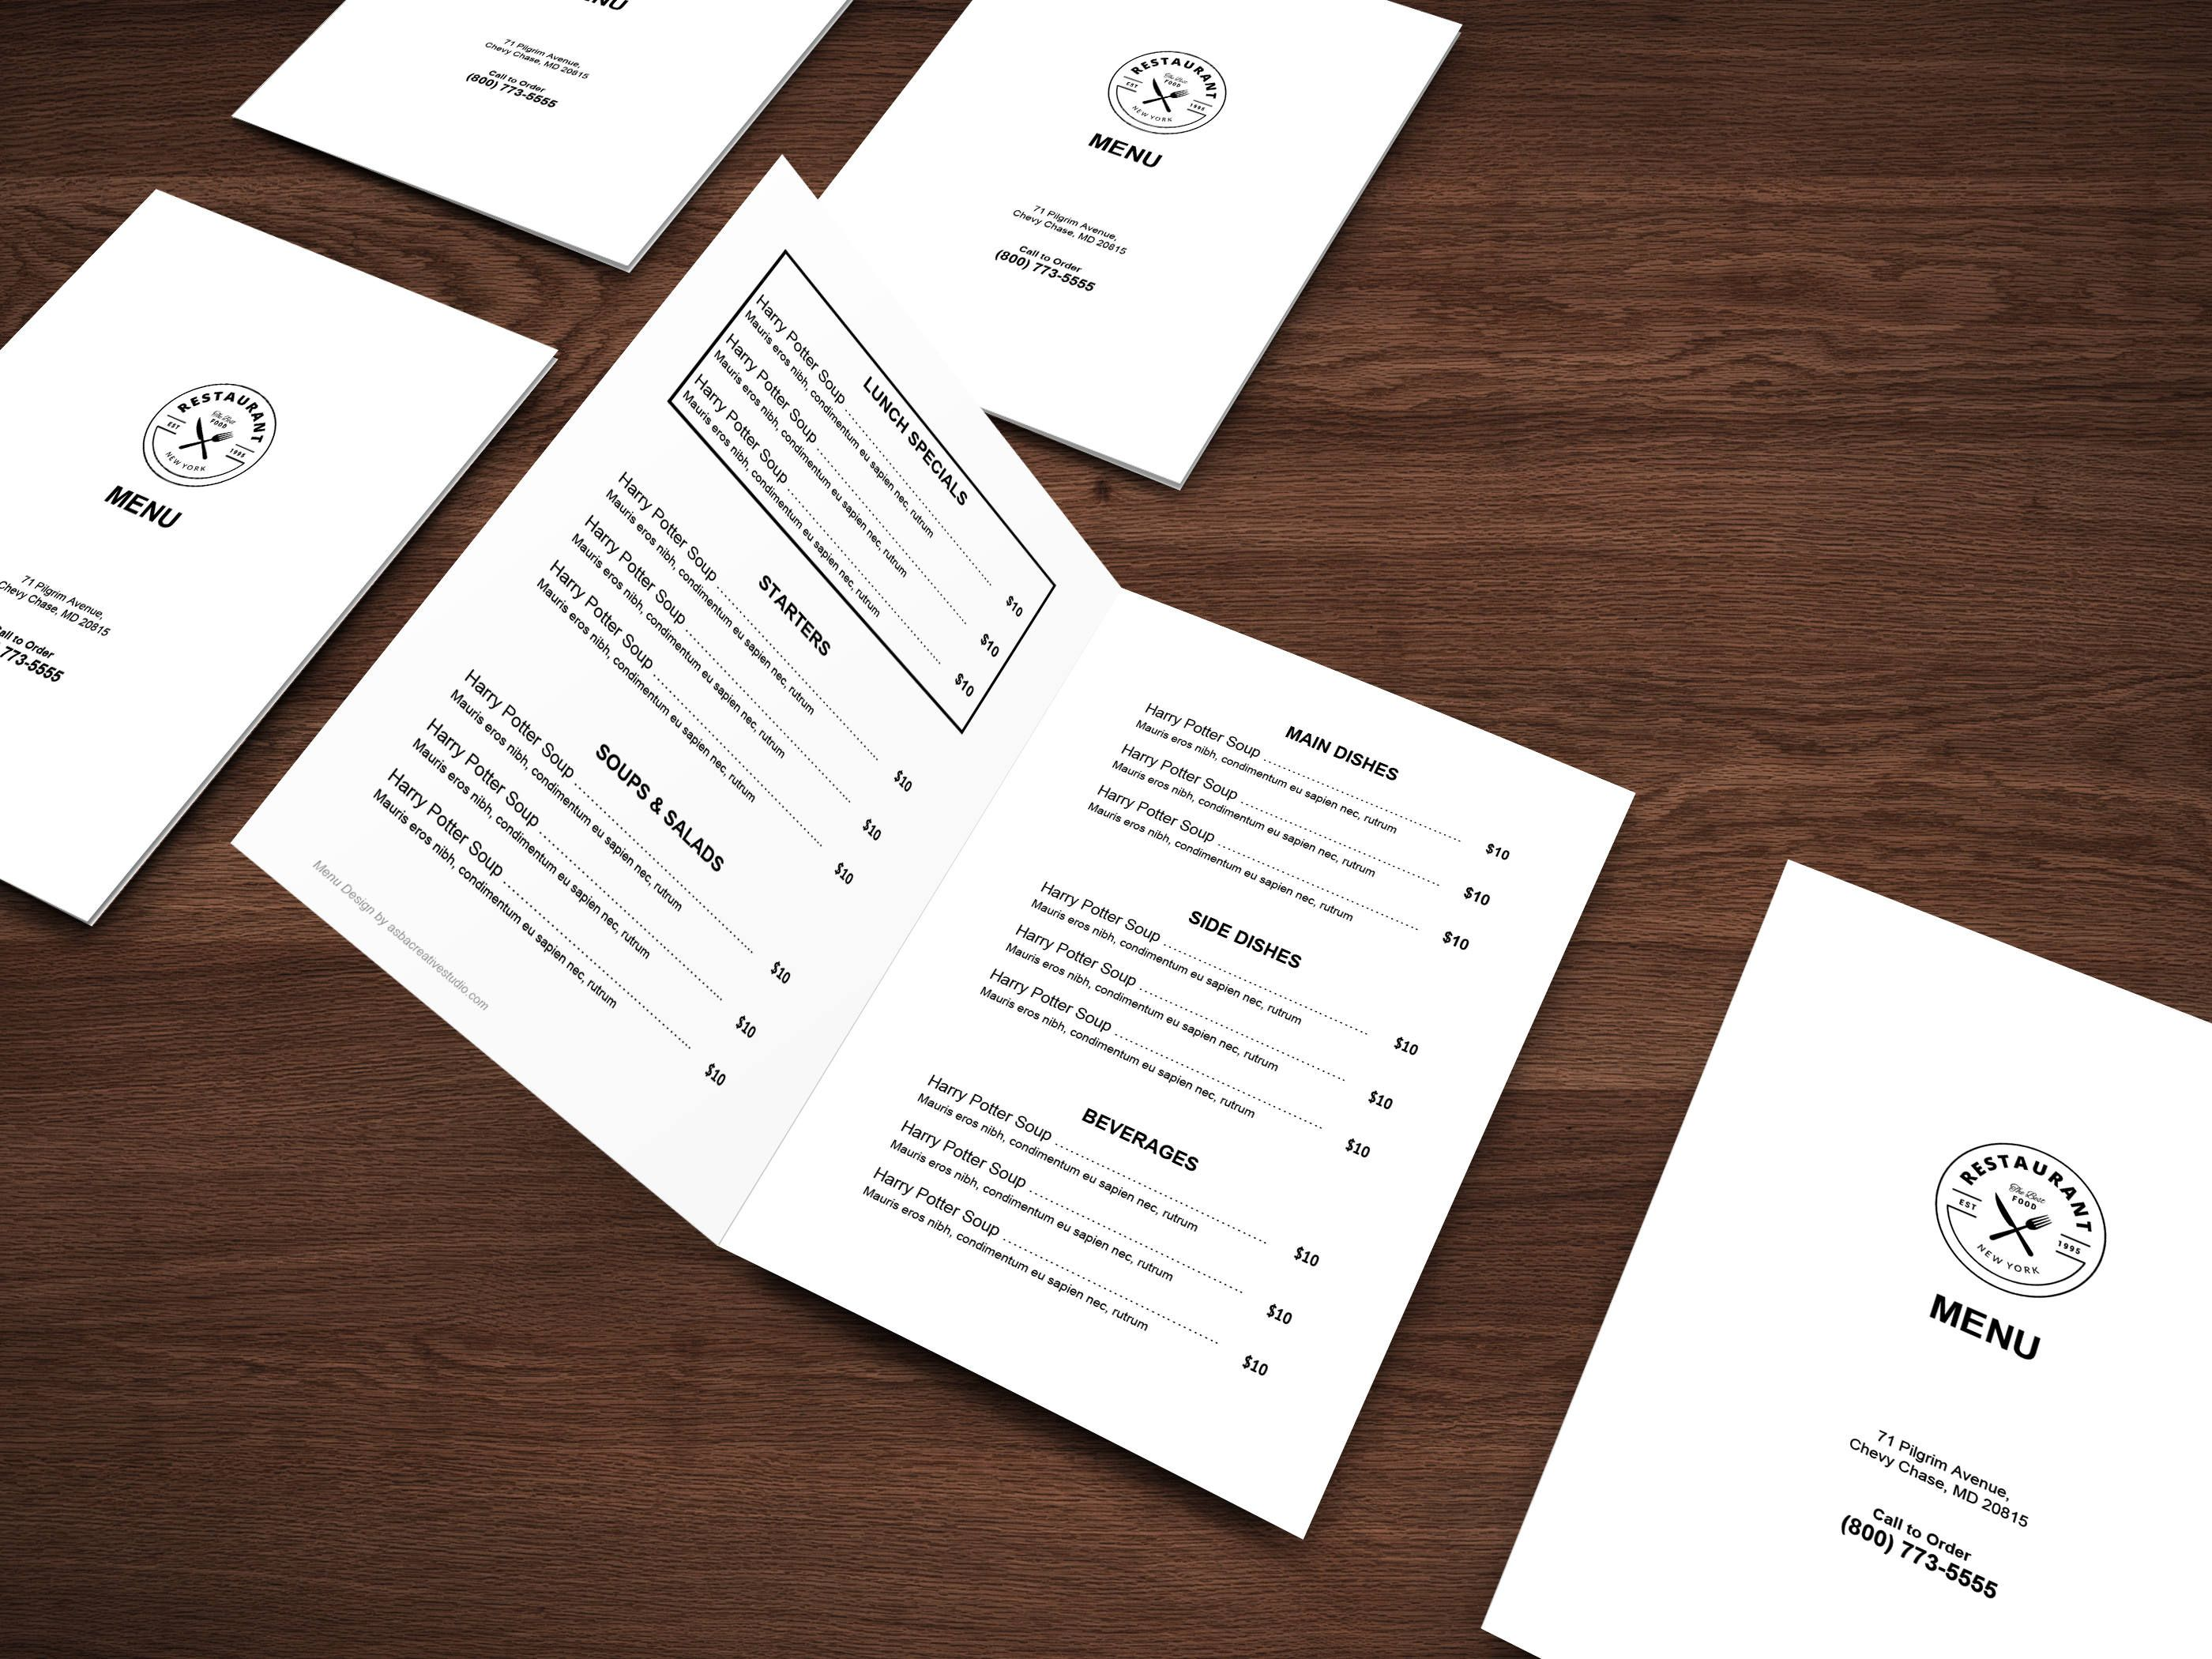 restaurant menu template menu template restaurant menu printable menu editable menu word menu google doc menu